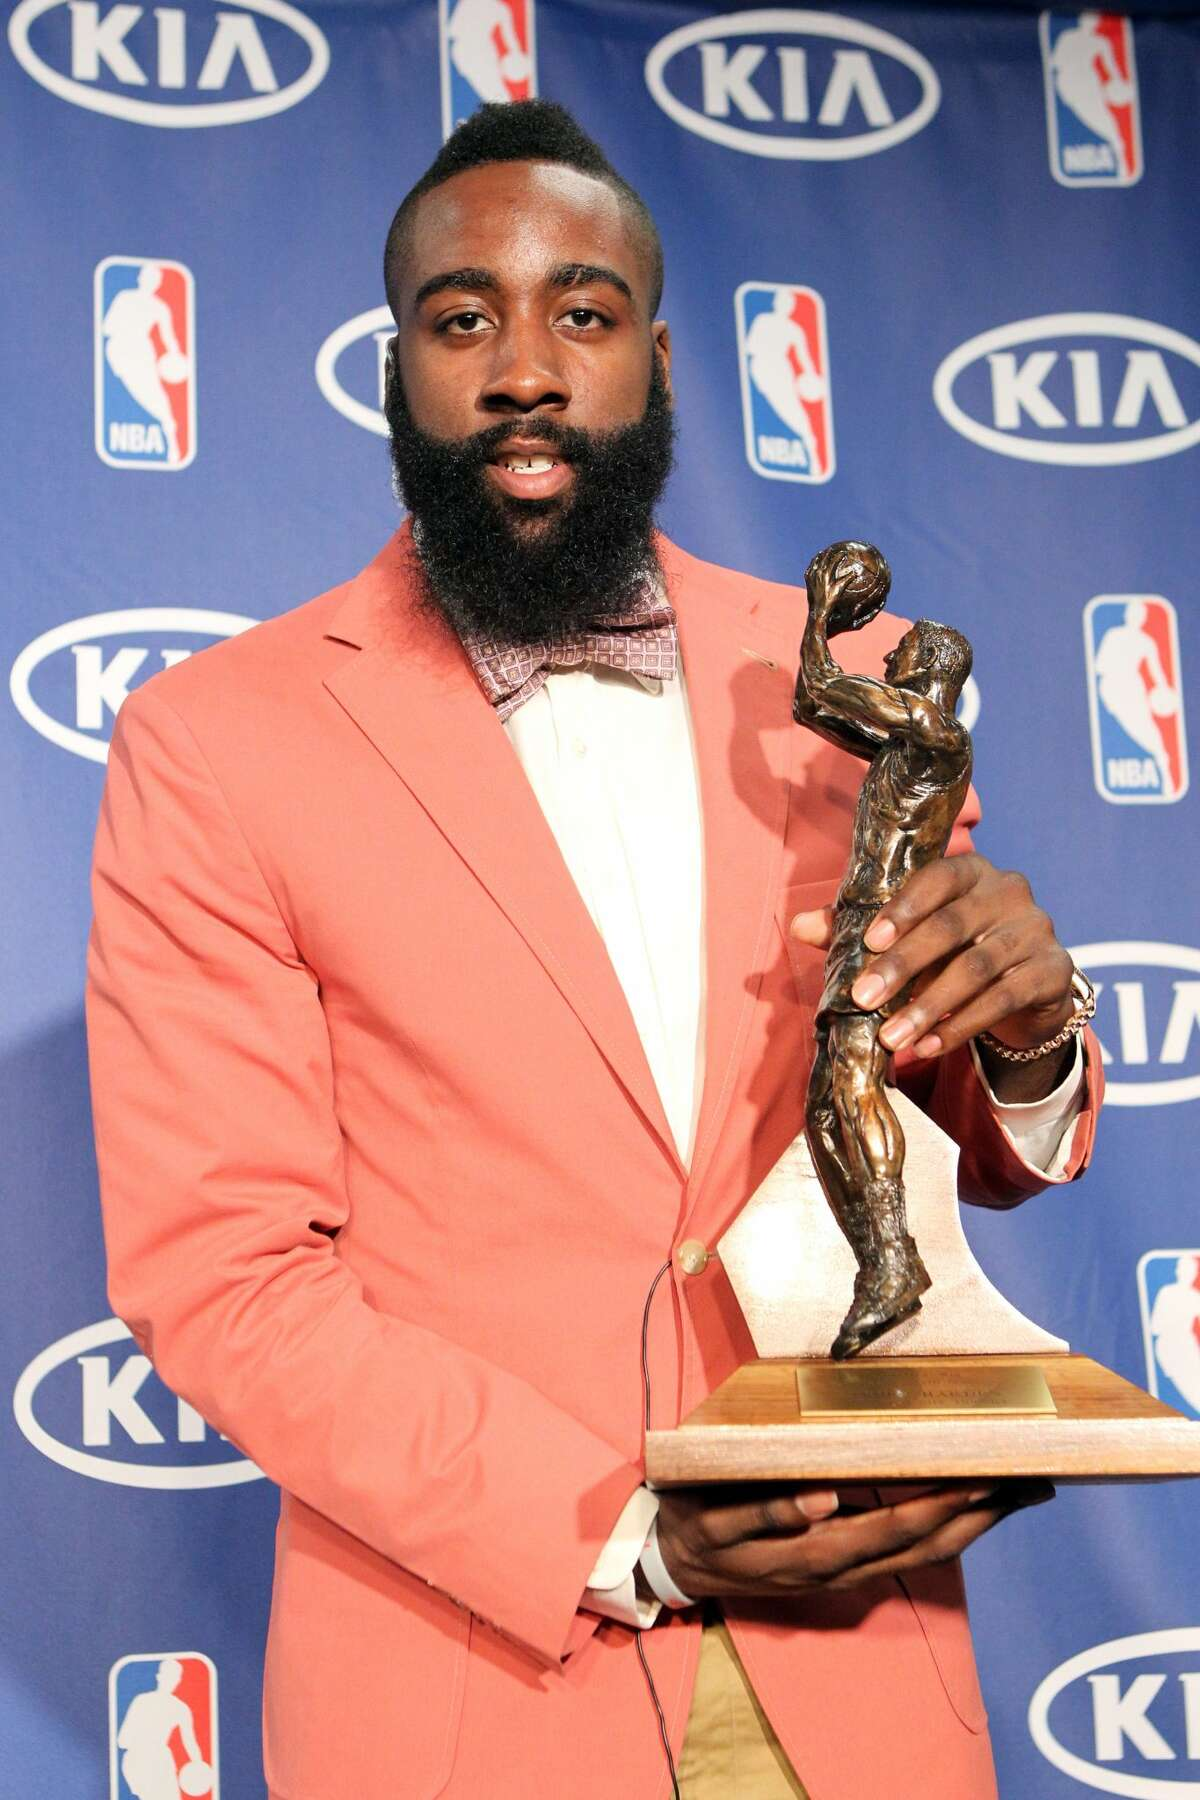 OKLAHOMA CITY, OK - MAY 10: The Oklahoma City Thunder's James Harden is the winner of the 2011-12 Kia NBA Sixth Man Award as the leagues best player in a reserve role, the NBA announced on May 10, 2012 at the Chesapeake Energy Arena in Oklahoma City, Oklahoma. Harden, who led all NBA reserves in scoring (16.8 ppg), came off the bench in 60 of 62 games he appeared in, helping Oklahoma City finish with the NBA's third-best record (47-19). (Photo by Layne Murdoch/NBAE via Getty Images)